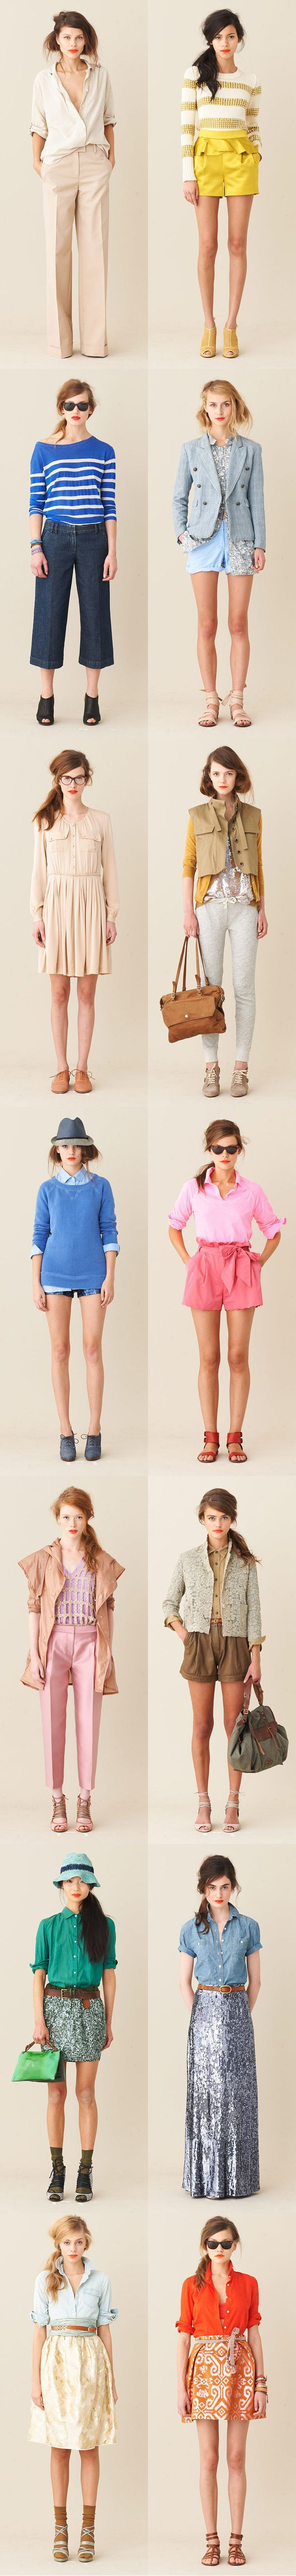 Love: J Crew Spring, J Crew Style, Style Inspiration, Clothing Collection, Cute Summer Outfits, Spring Lookbook, Preppy Skirts J Crew, Jcrew Spring Style, Lookbook 11